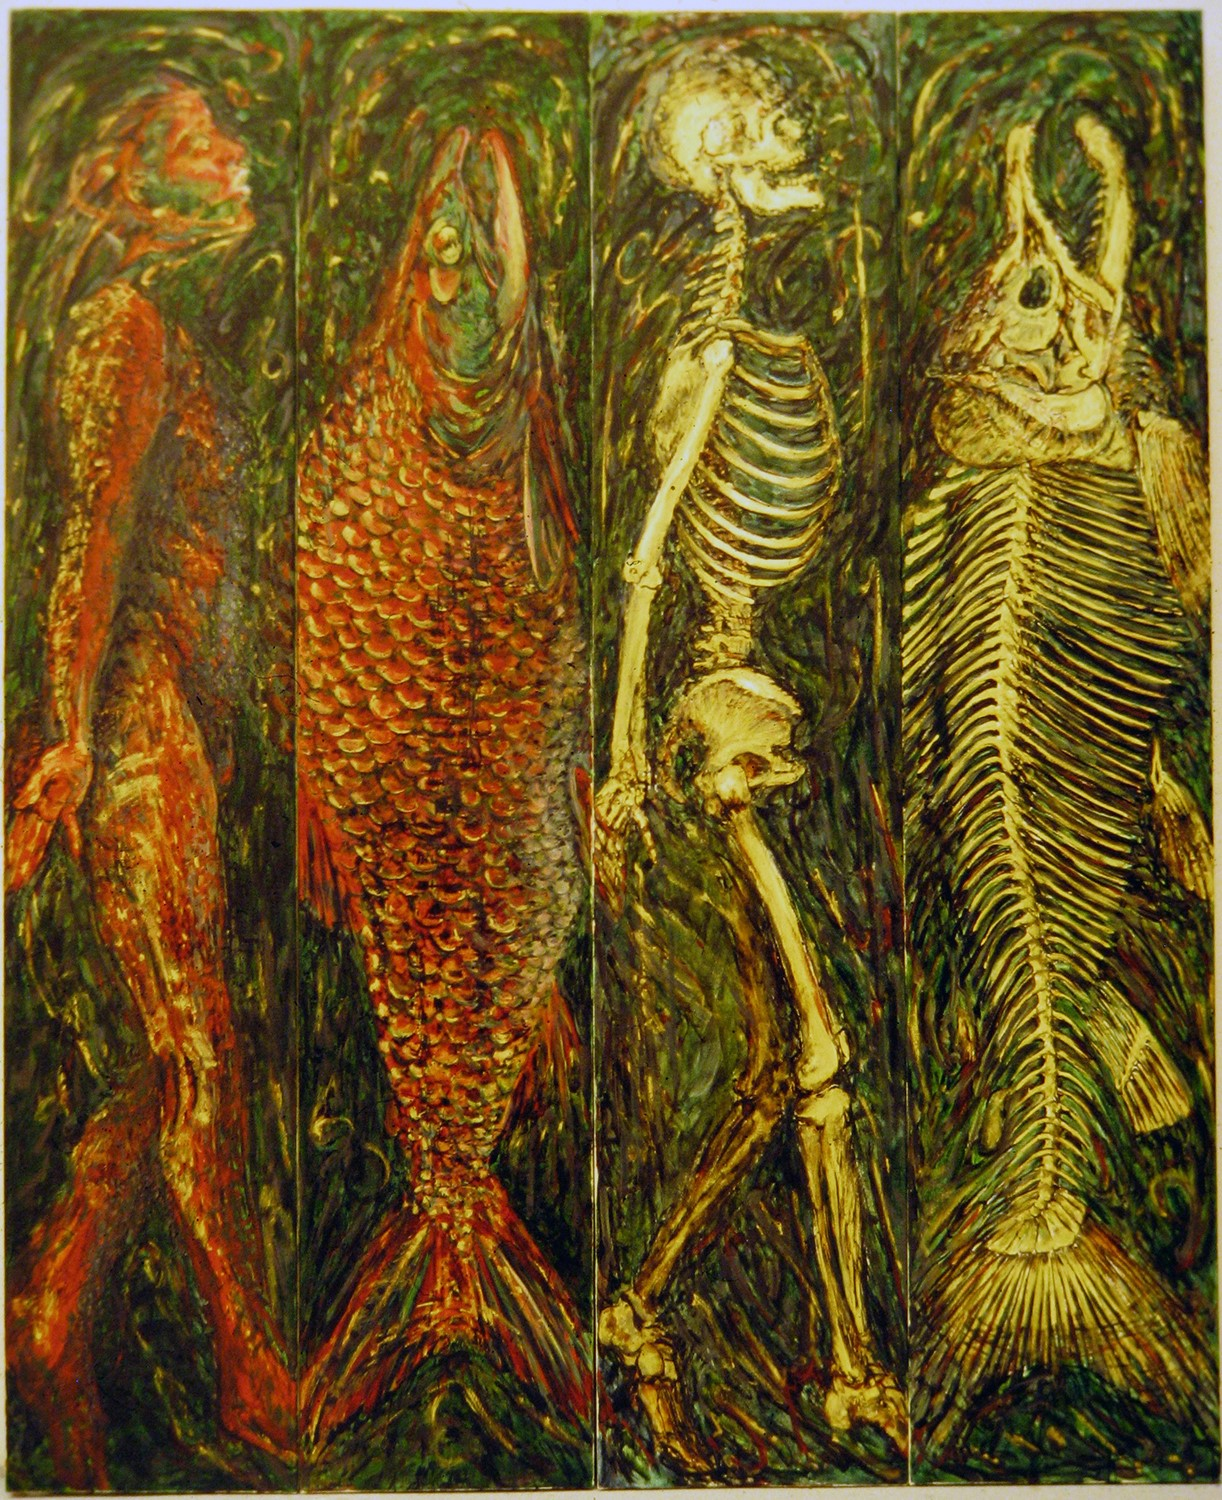 salmon and man 4 panels 1988 oil 72x56